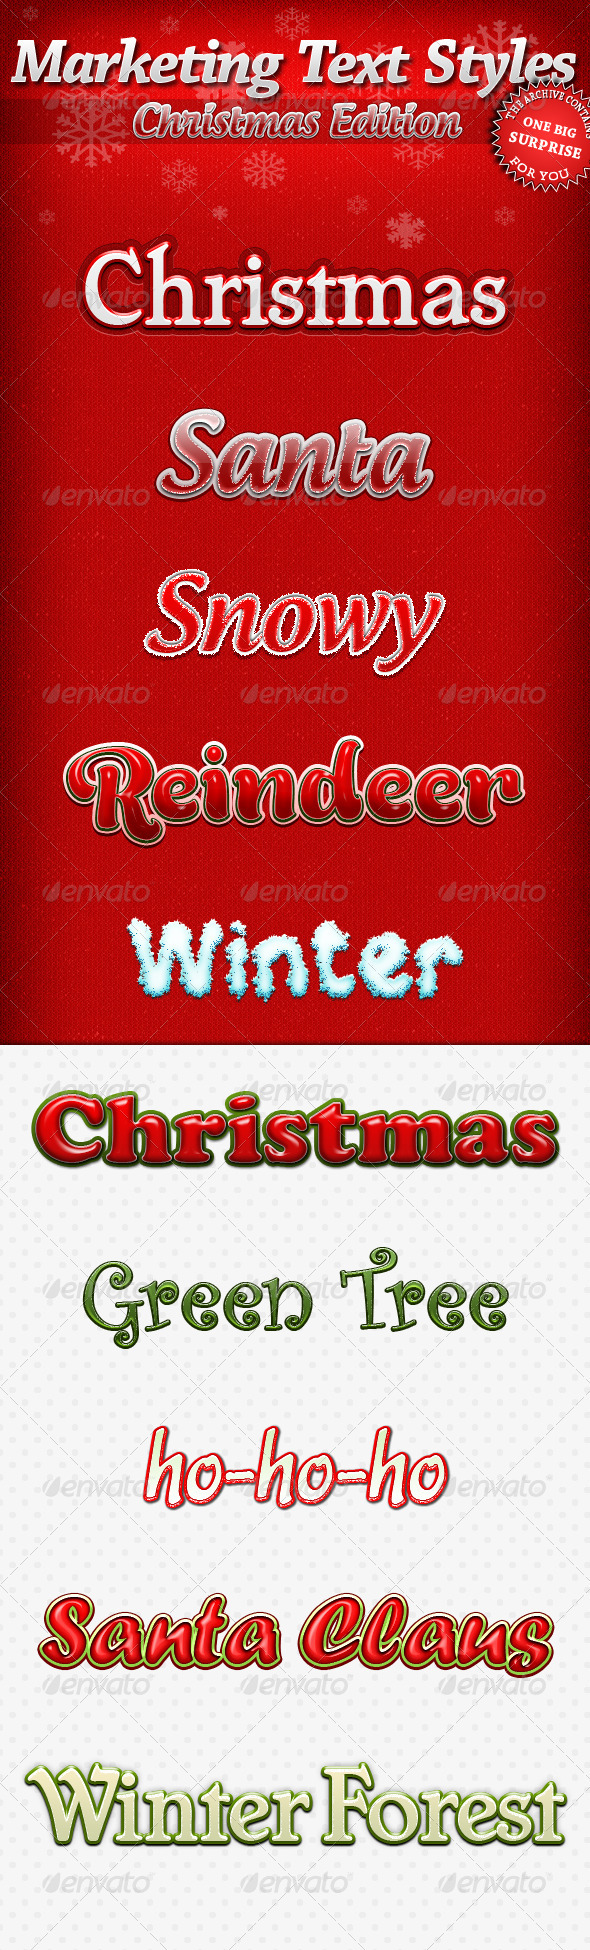 GraphicRiver Marketing Text Styles Christmas Edition 3519947